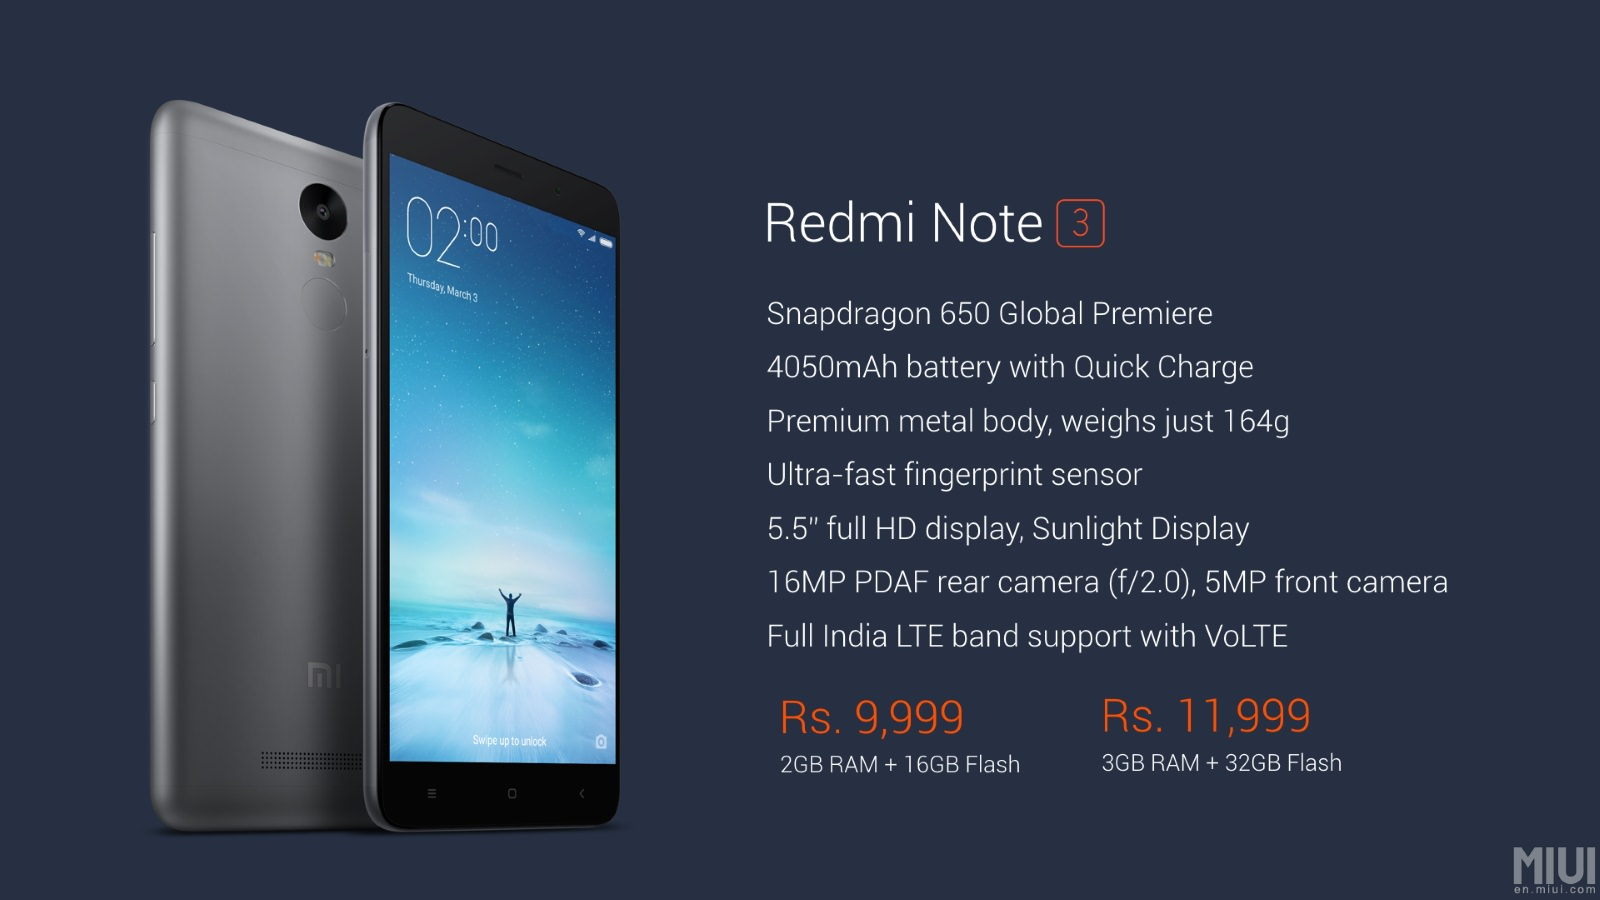 Xiaomi Redmi Note 3 Specifications Price And Features: Xiaomi Redmi Note 3 Launched In India